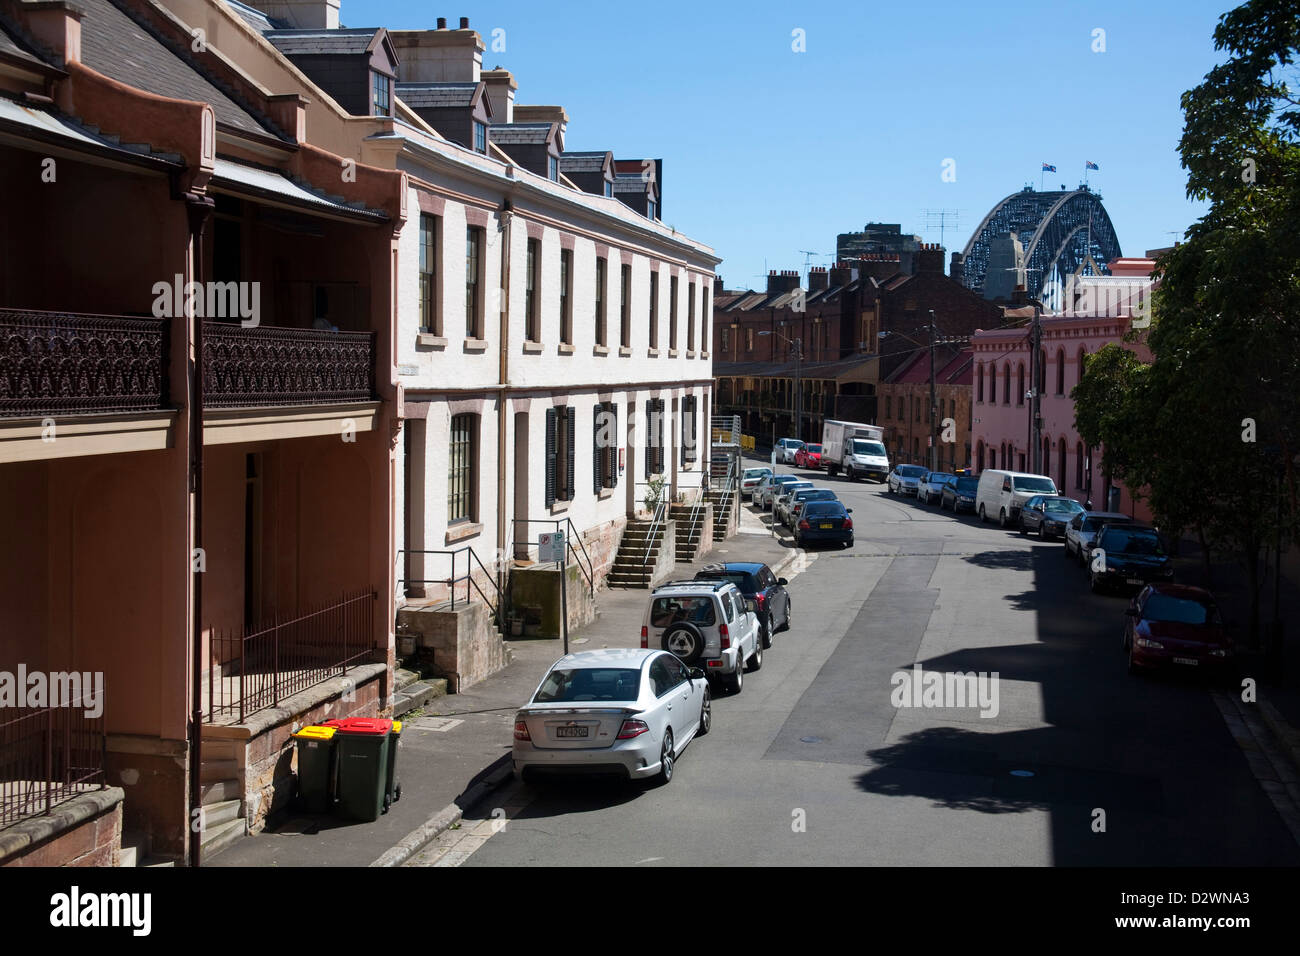 A Time Capsule at historic Gloucester Street The Rocks Sydney Australia Stock Photo